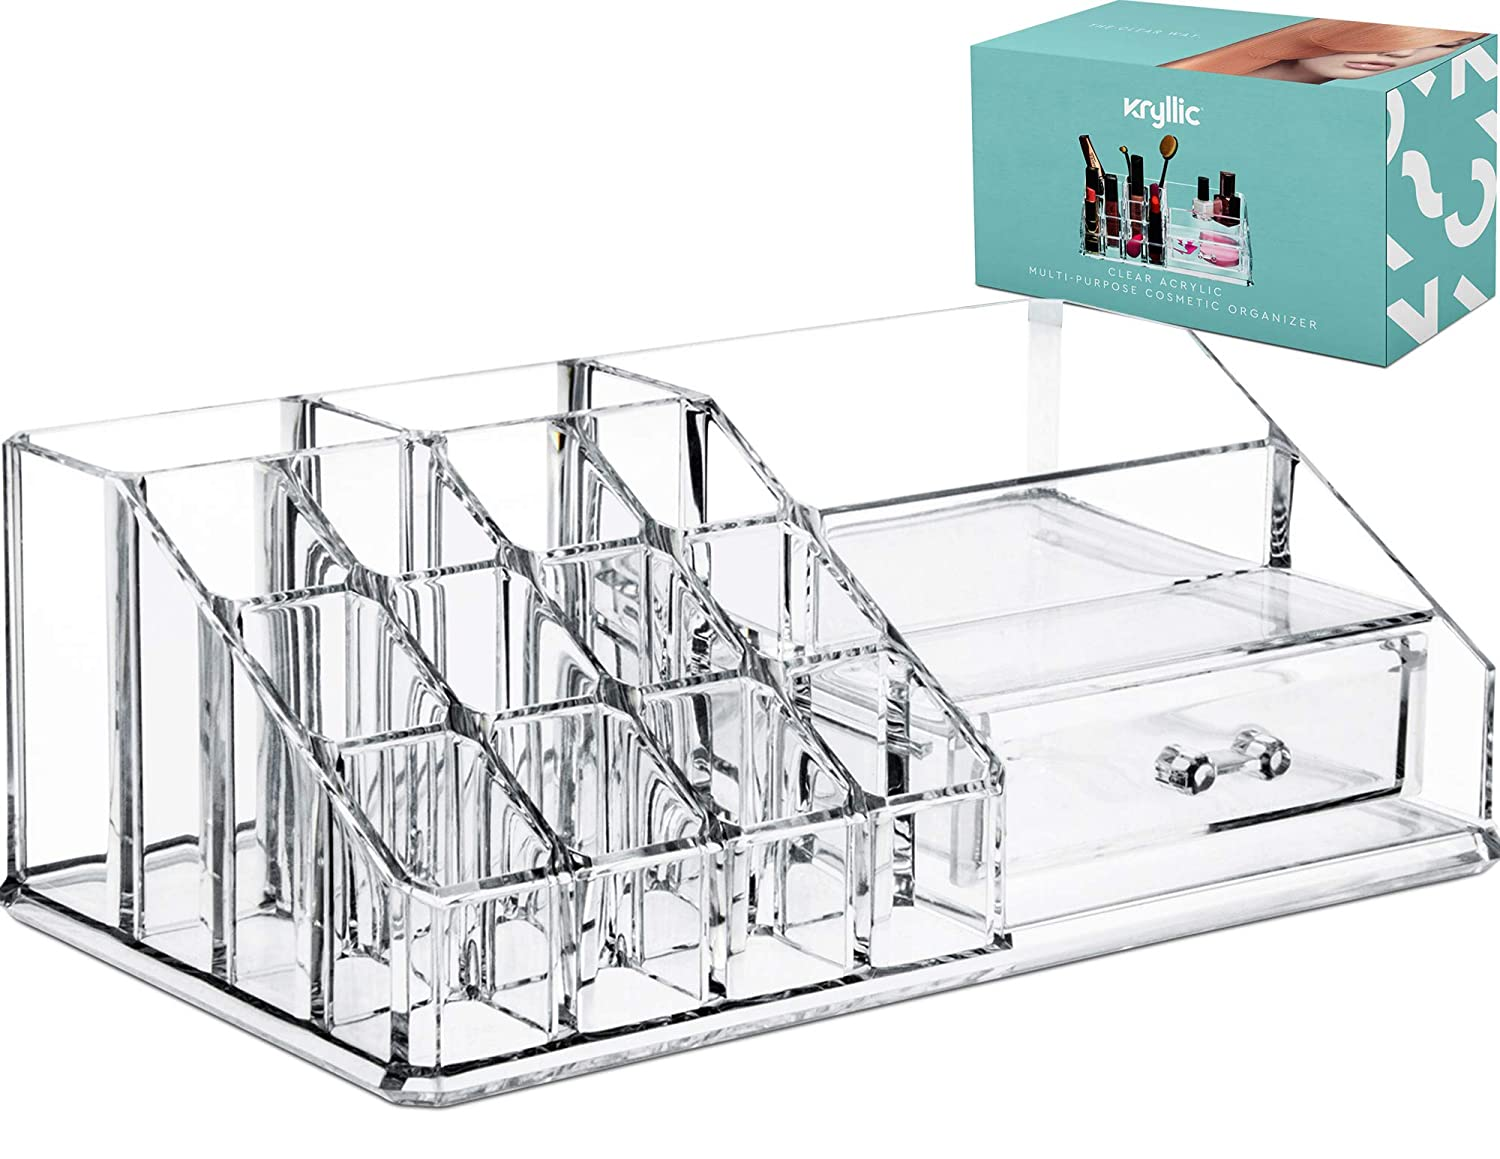 Acrylic Cosmetic Storage Lipstick Organizer - Decor 15 slot organizers & 1 box drawer tray holder for makeup perfume brush pens pencil lipgloss and other beauty accessories! For vanity or countertop! Kryllic 29885